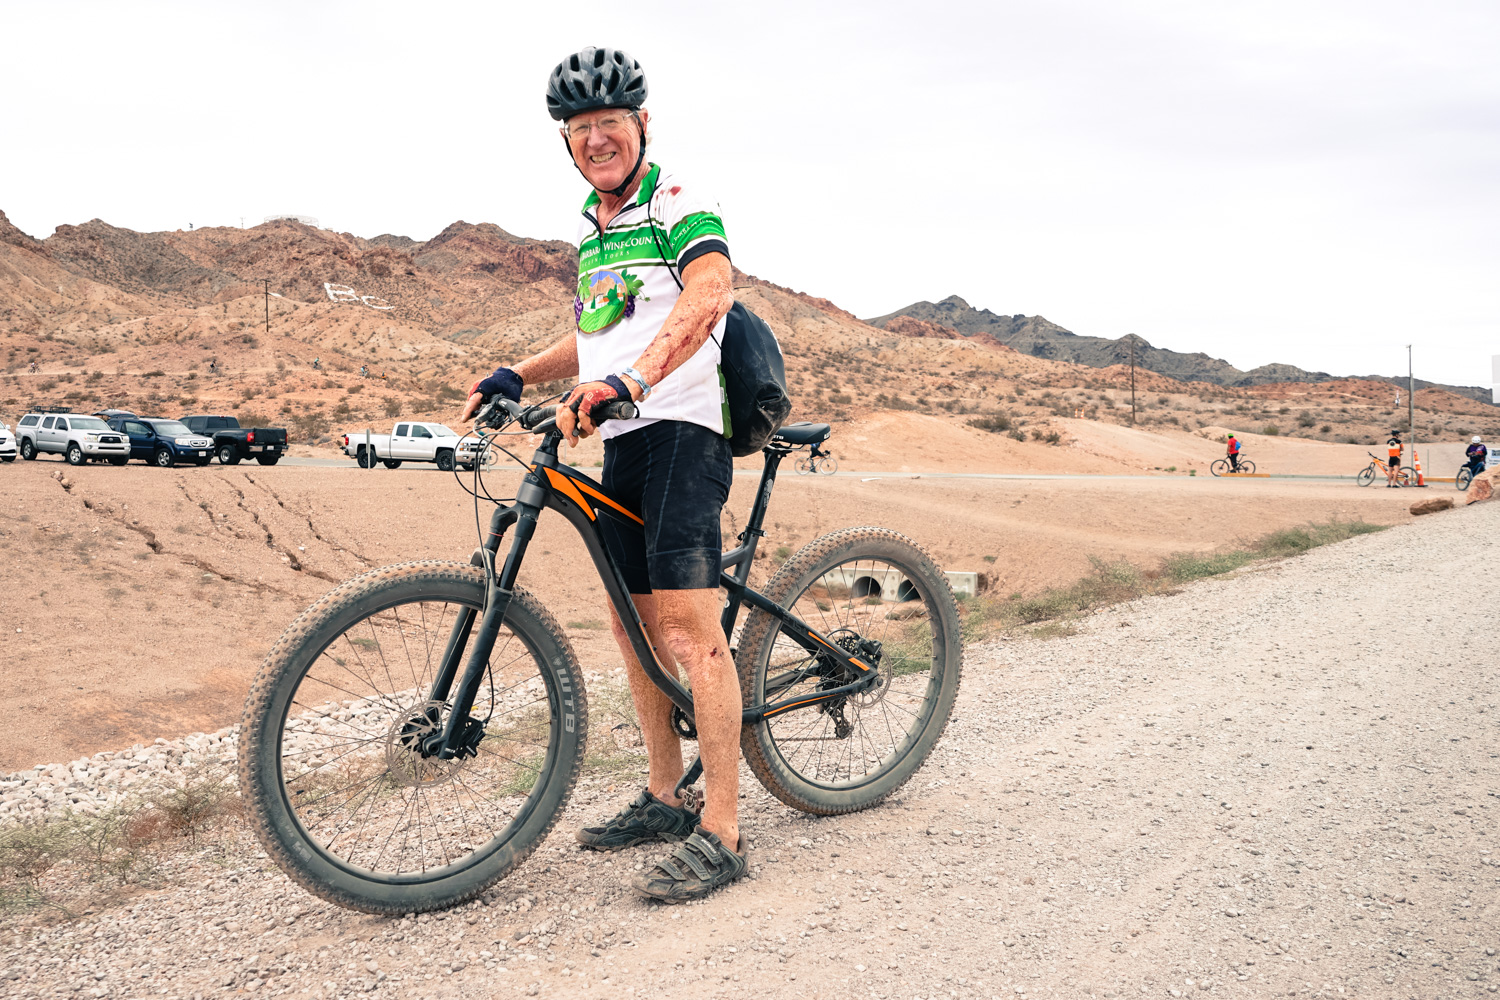 Don tried out Haro's plus-size hardtail.